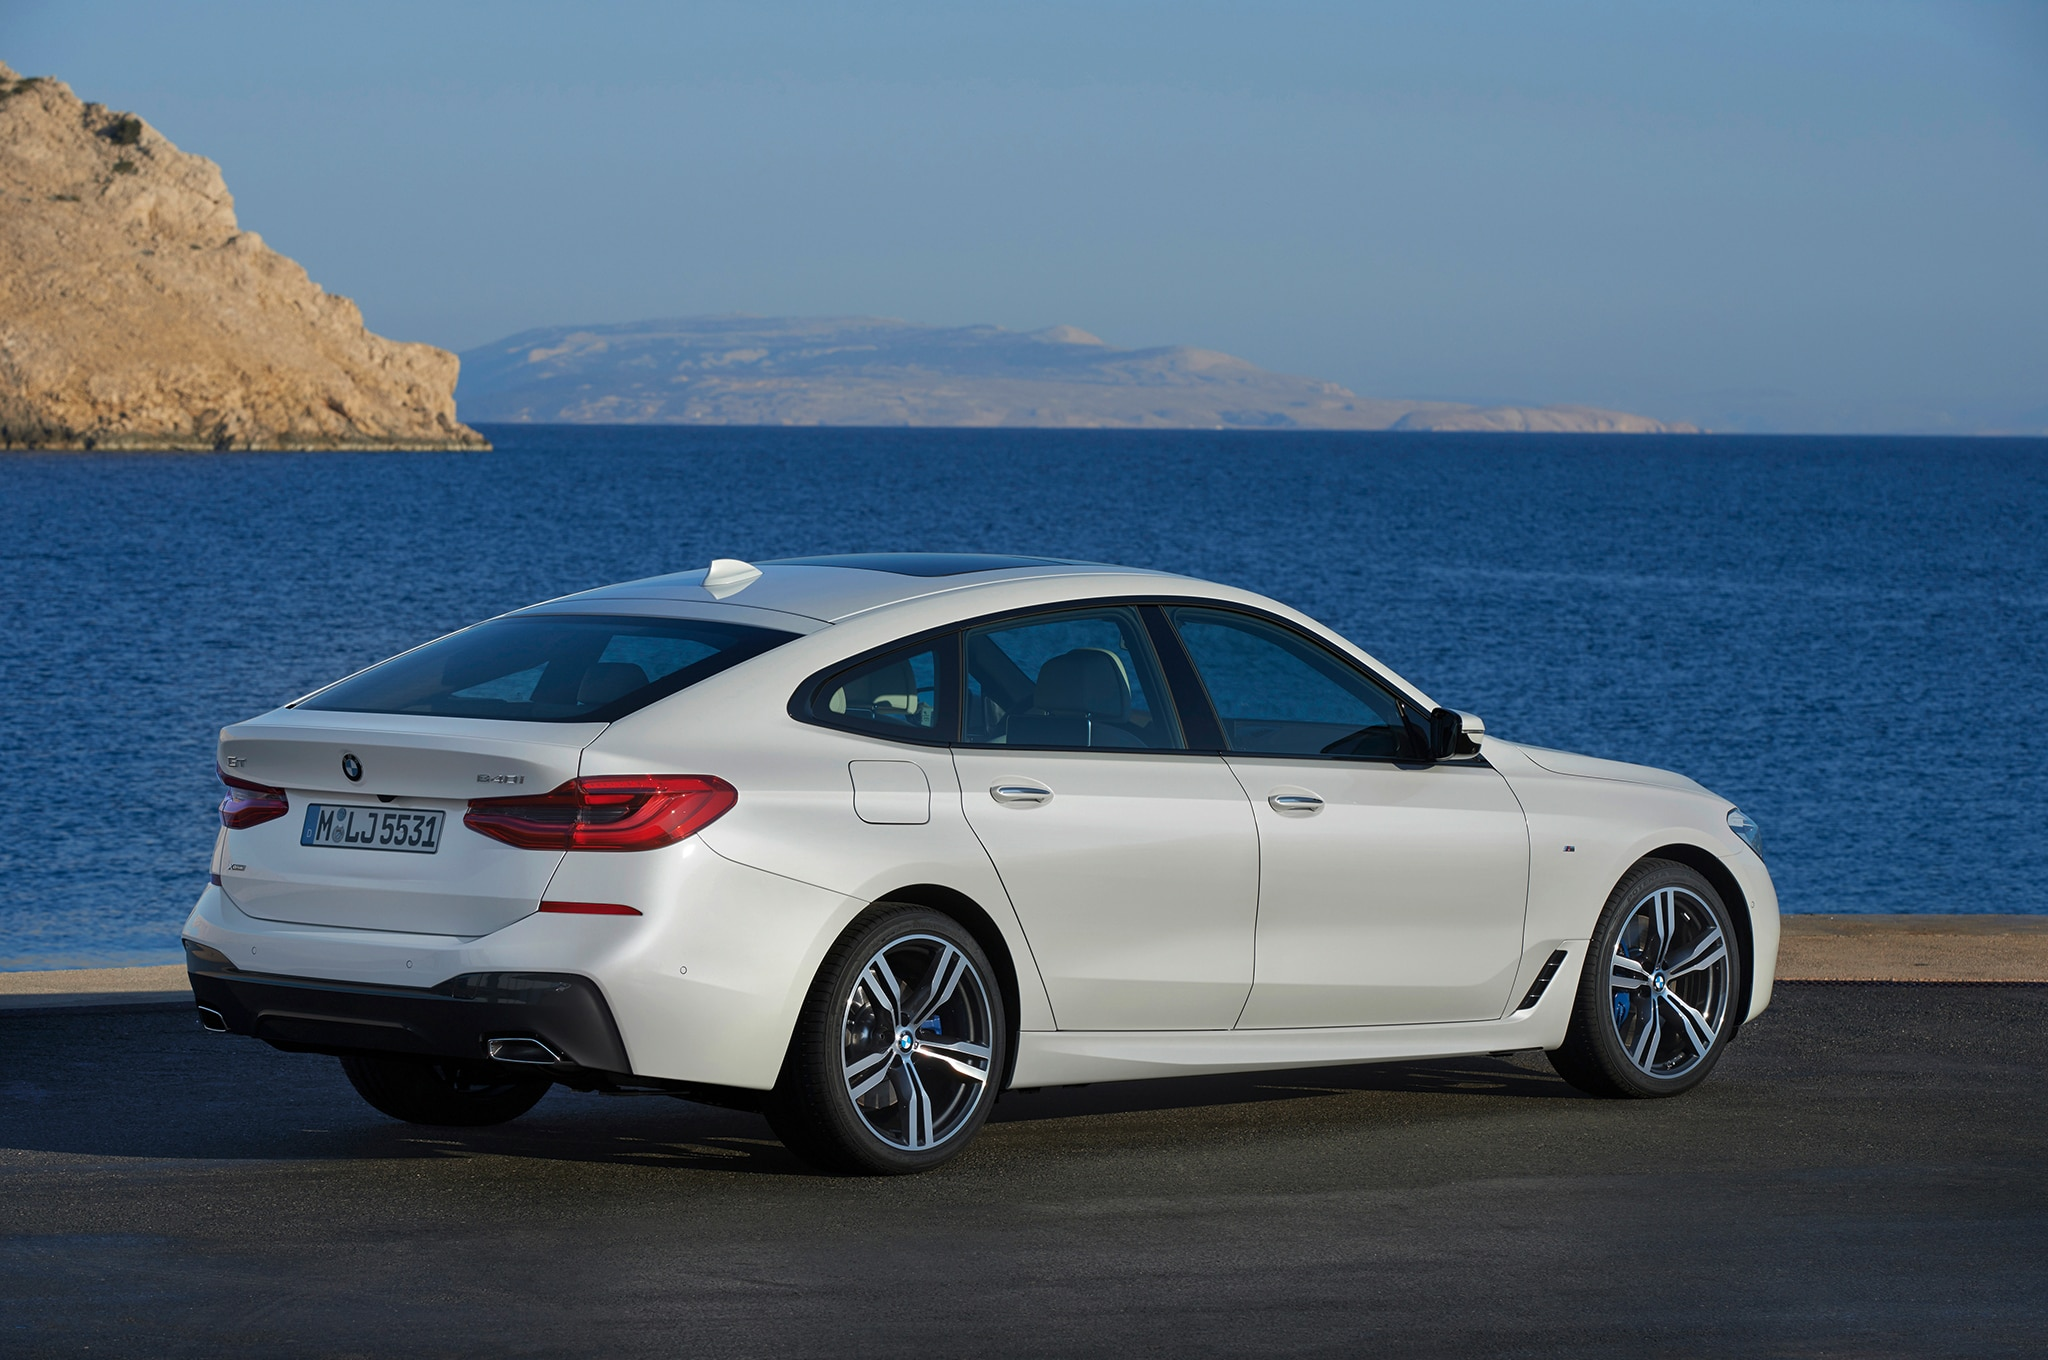 2018 Bmw 640i Xdrive Gran Turismo Picks Up Where The 5 Gt Left Off